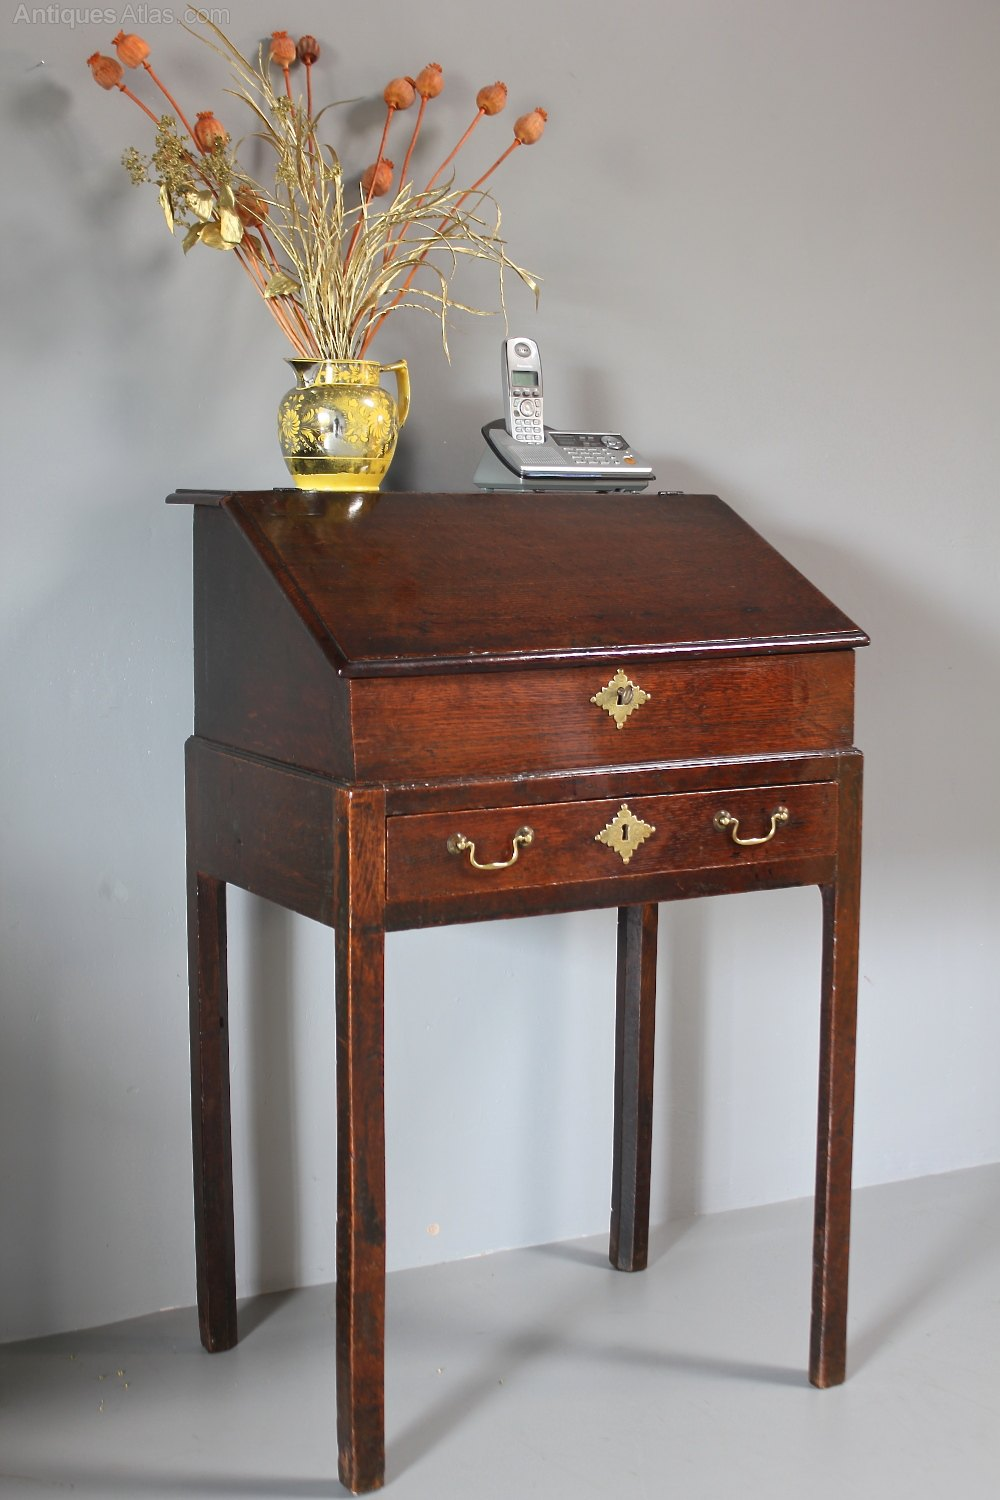 Small 19th Century Slant Top Desk On Legs R415 Antiques Atlas